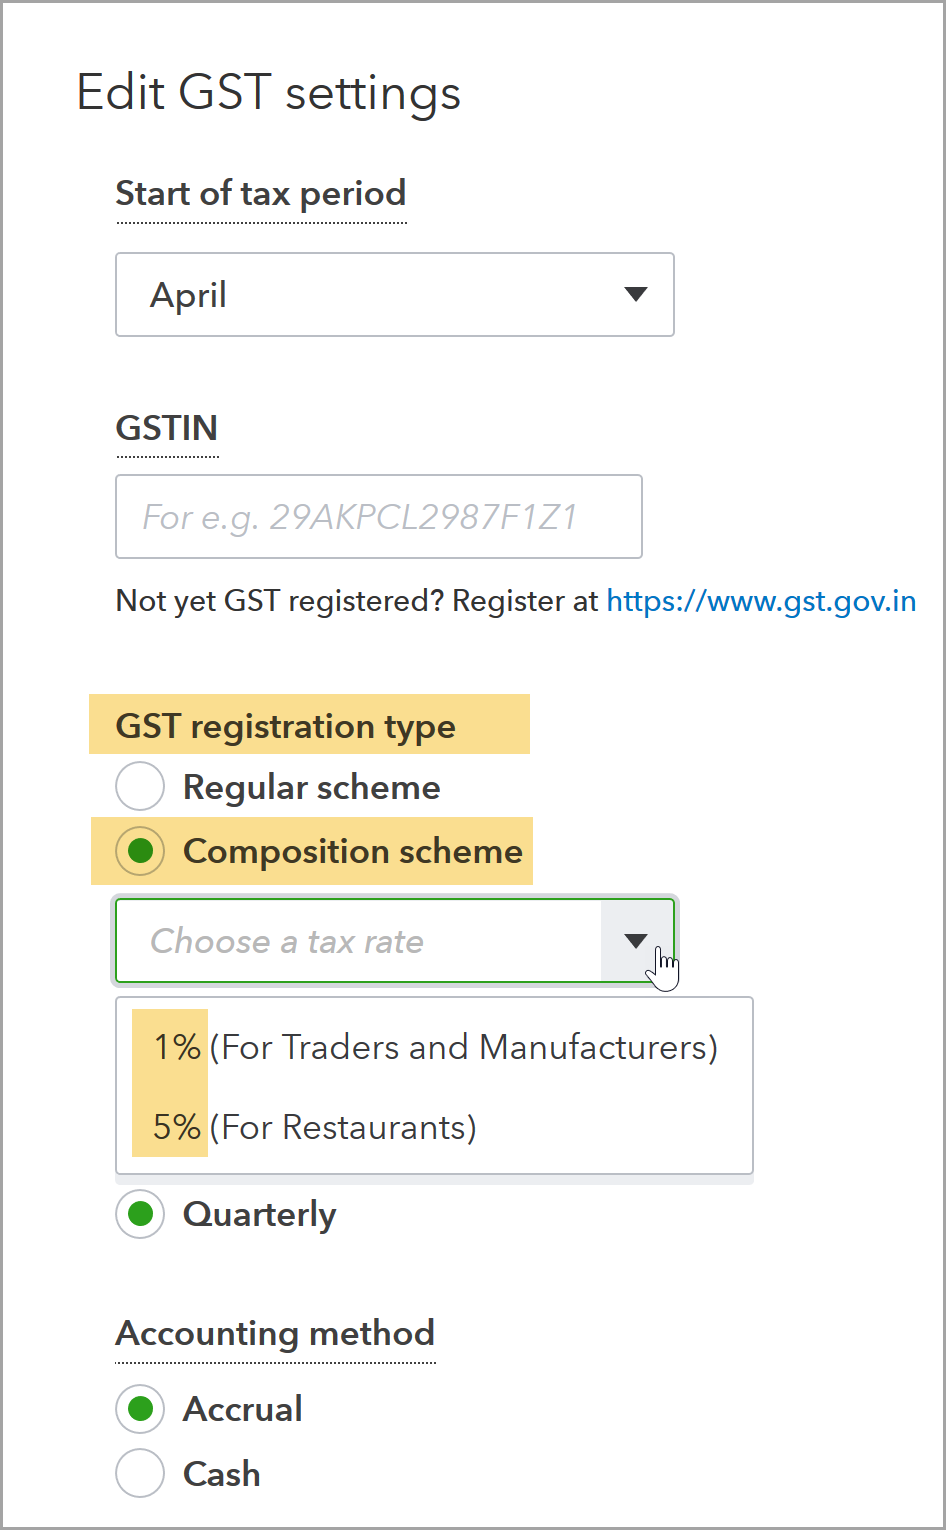 Screenshot of the GST Settings dialog for Composition Scheme users.